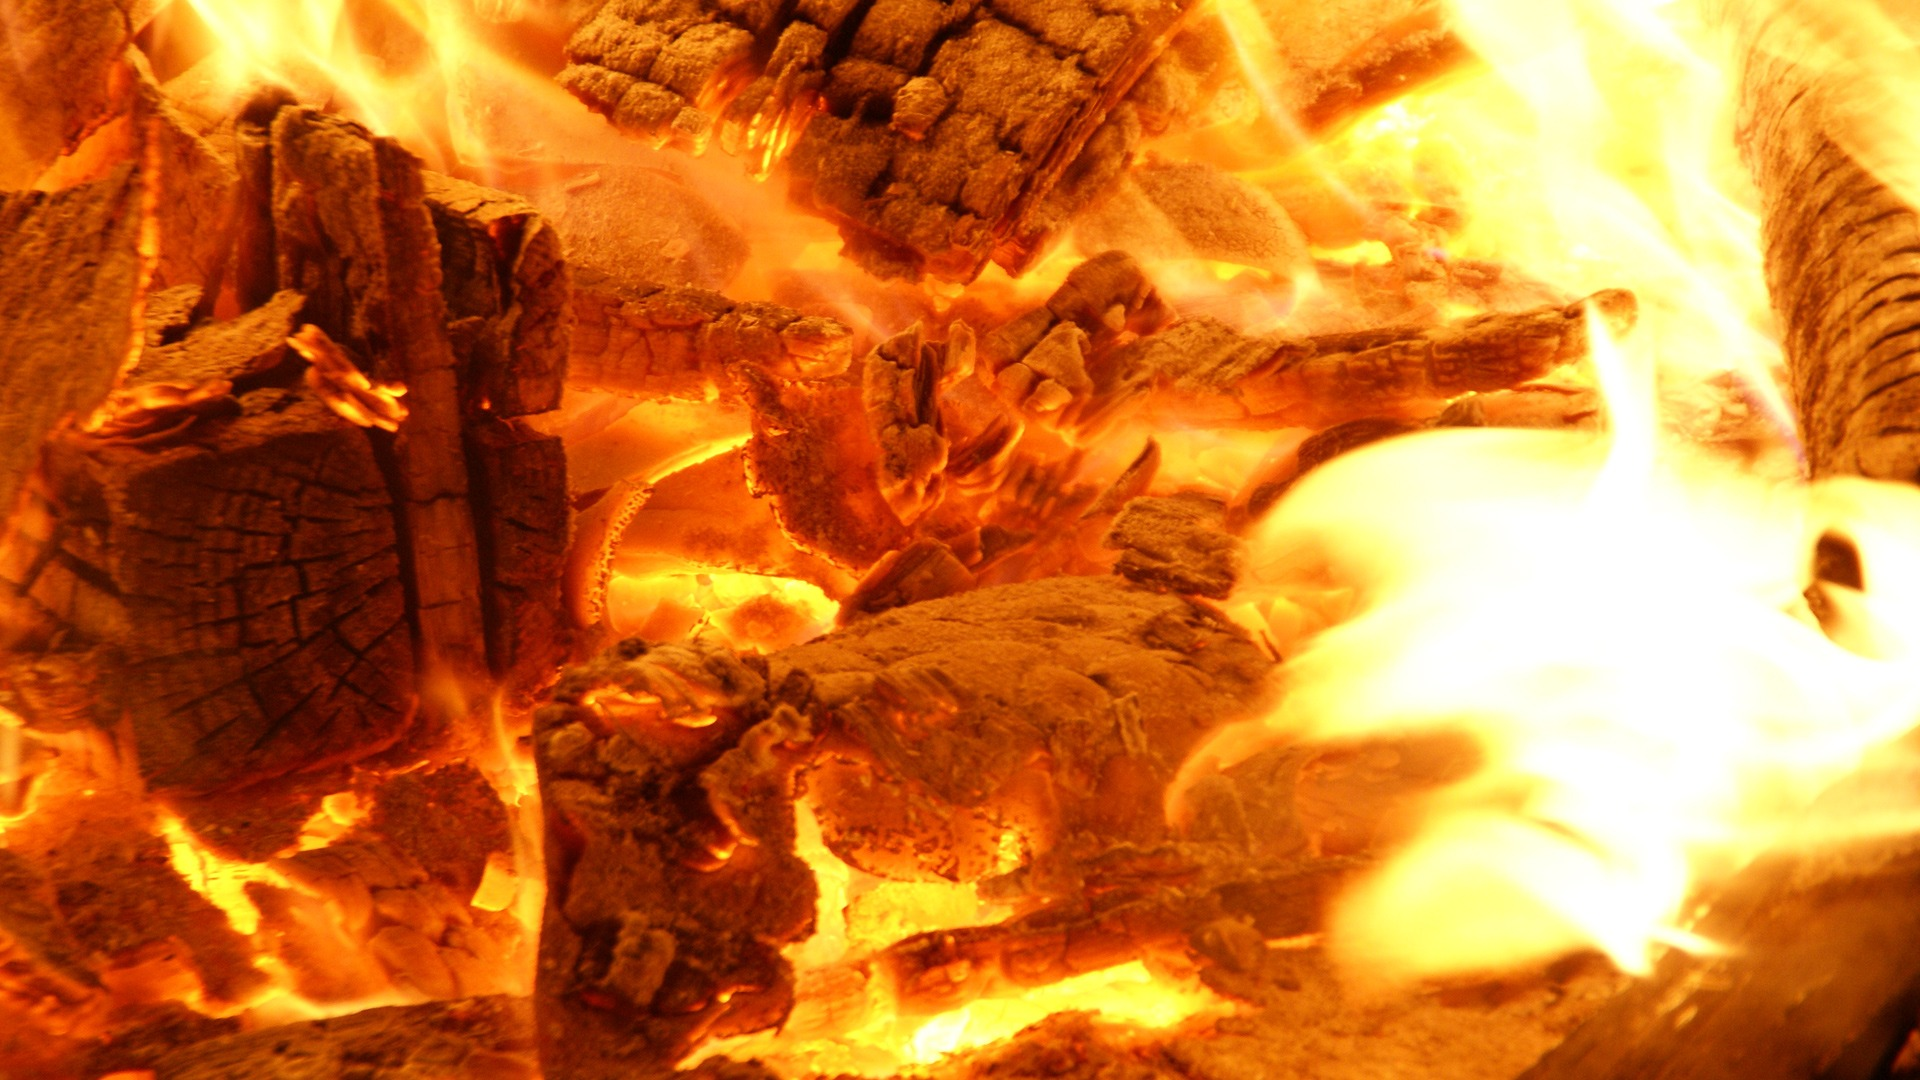 Wood Fire Wallpaper Other Nature Wallpapers In Jpg Format